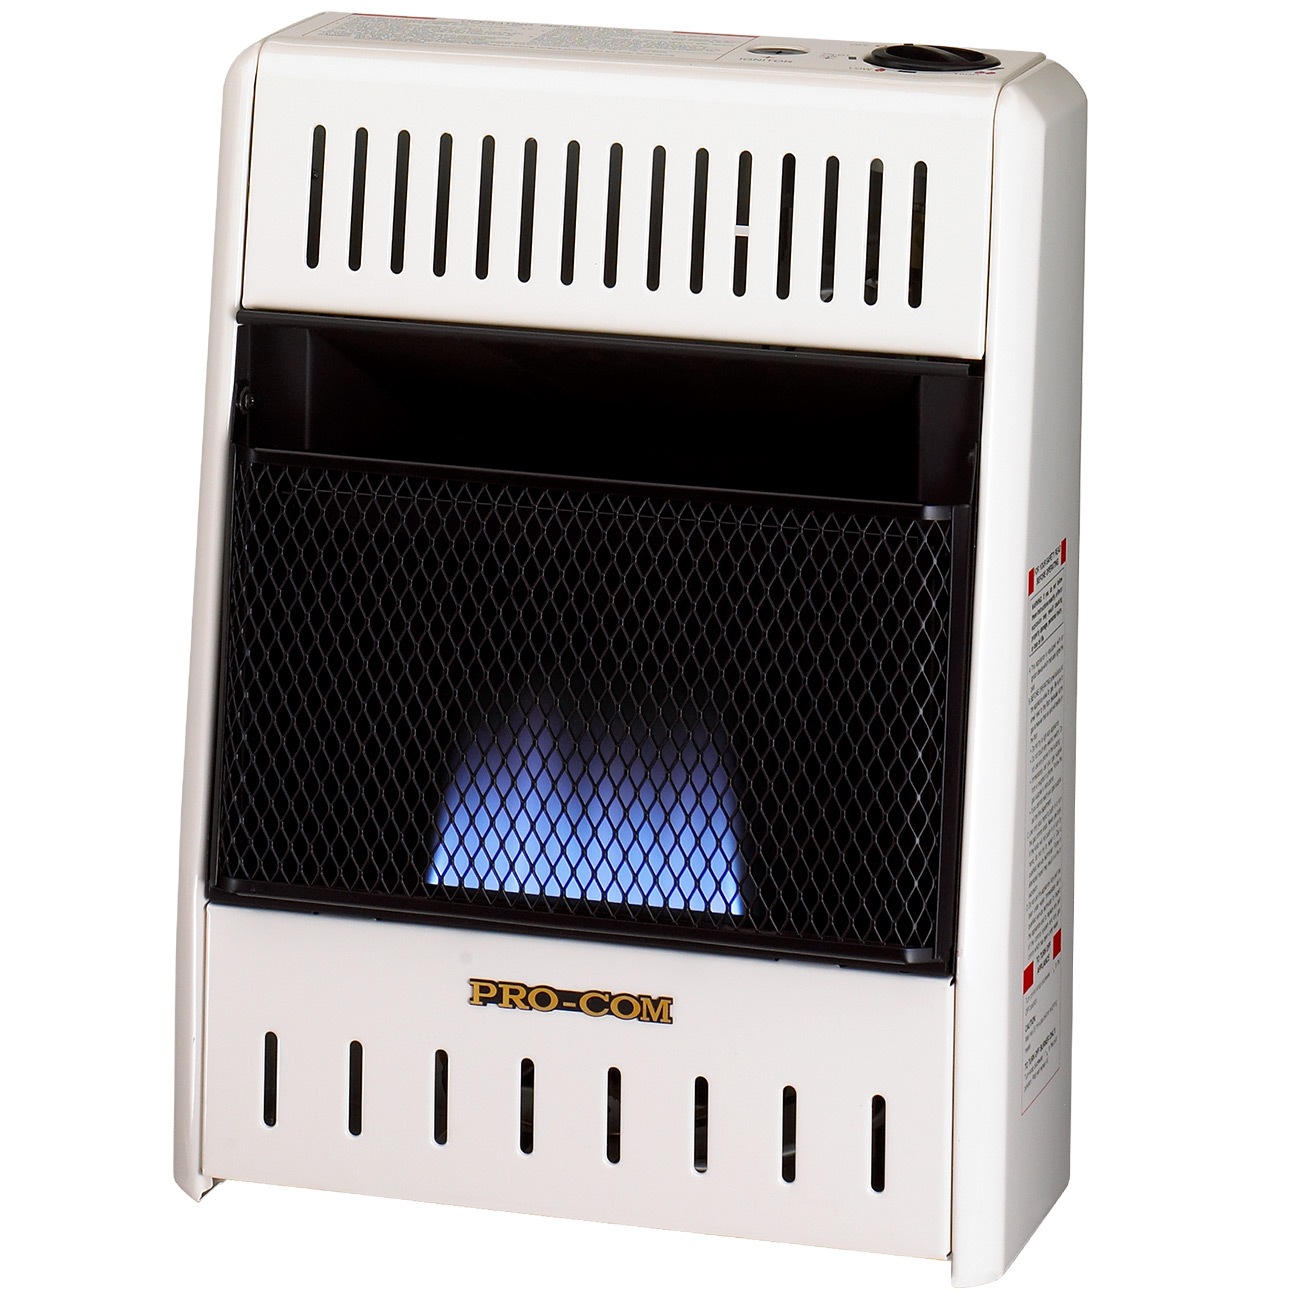 Ventless Blue Flame Propane Gas Wall Heater 10 000 Btu